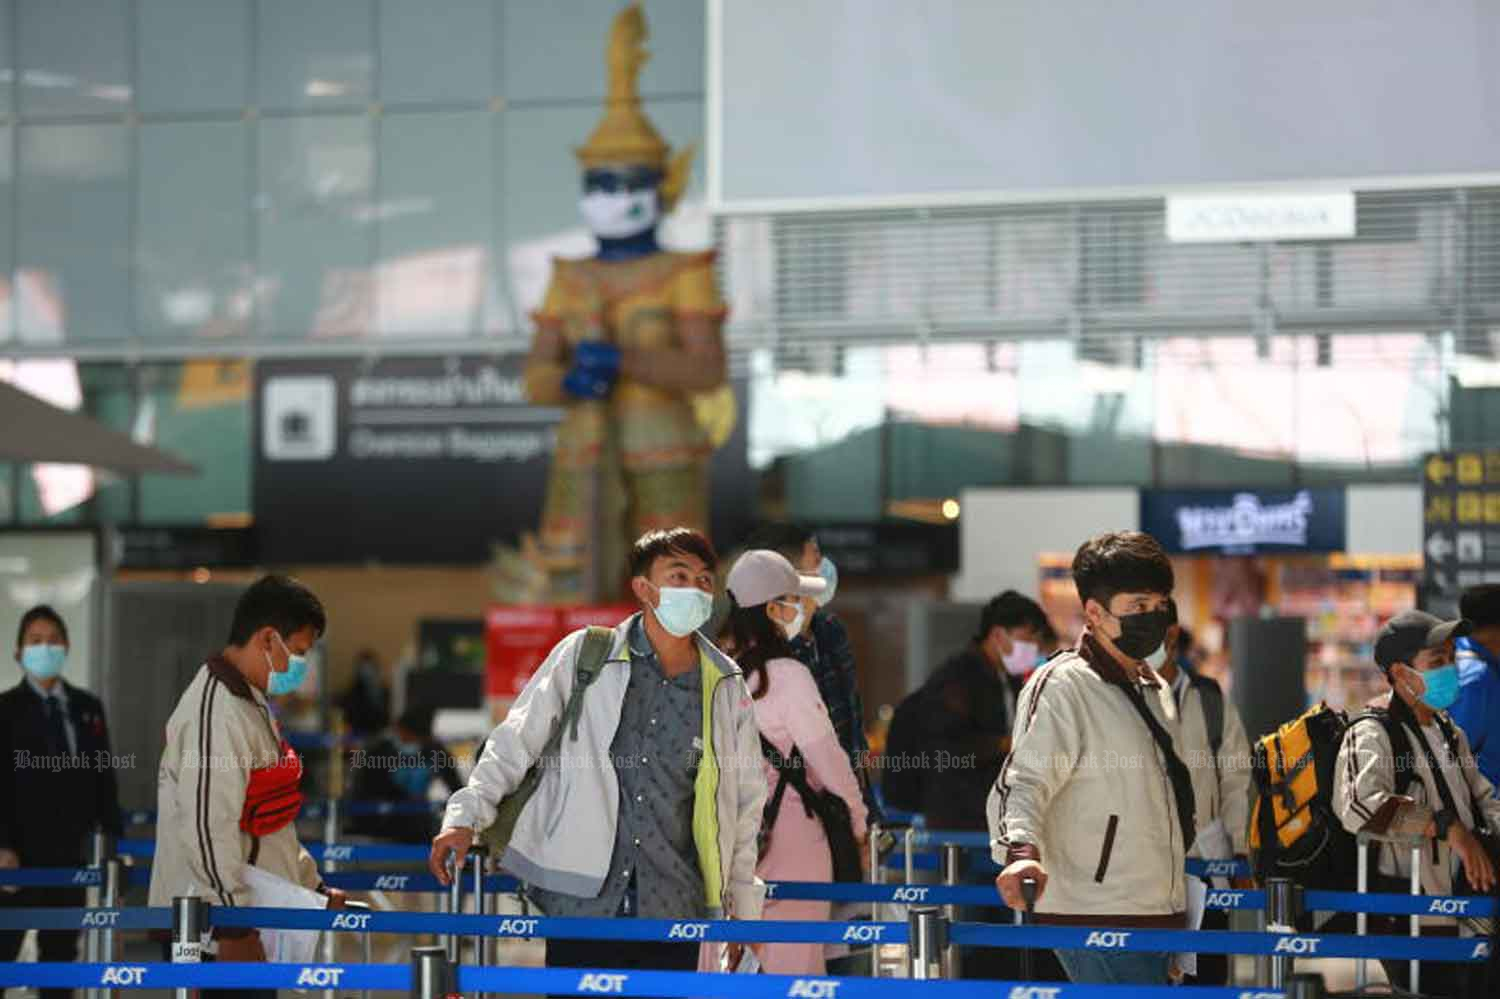 Travellers wear face masks for Covid-19 prevention at Suvarnabhumi airport in Samut Prakan province on Thursday. The country reported 205 new Covid-19 cases on Friday. (Photo: Somchai Poomlard)